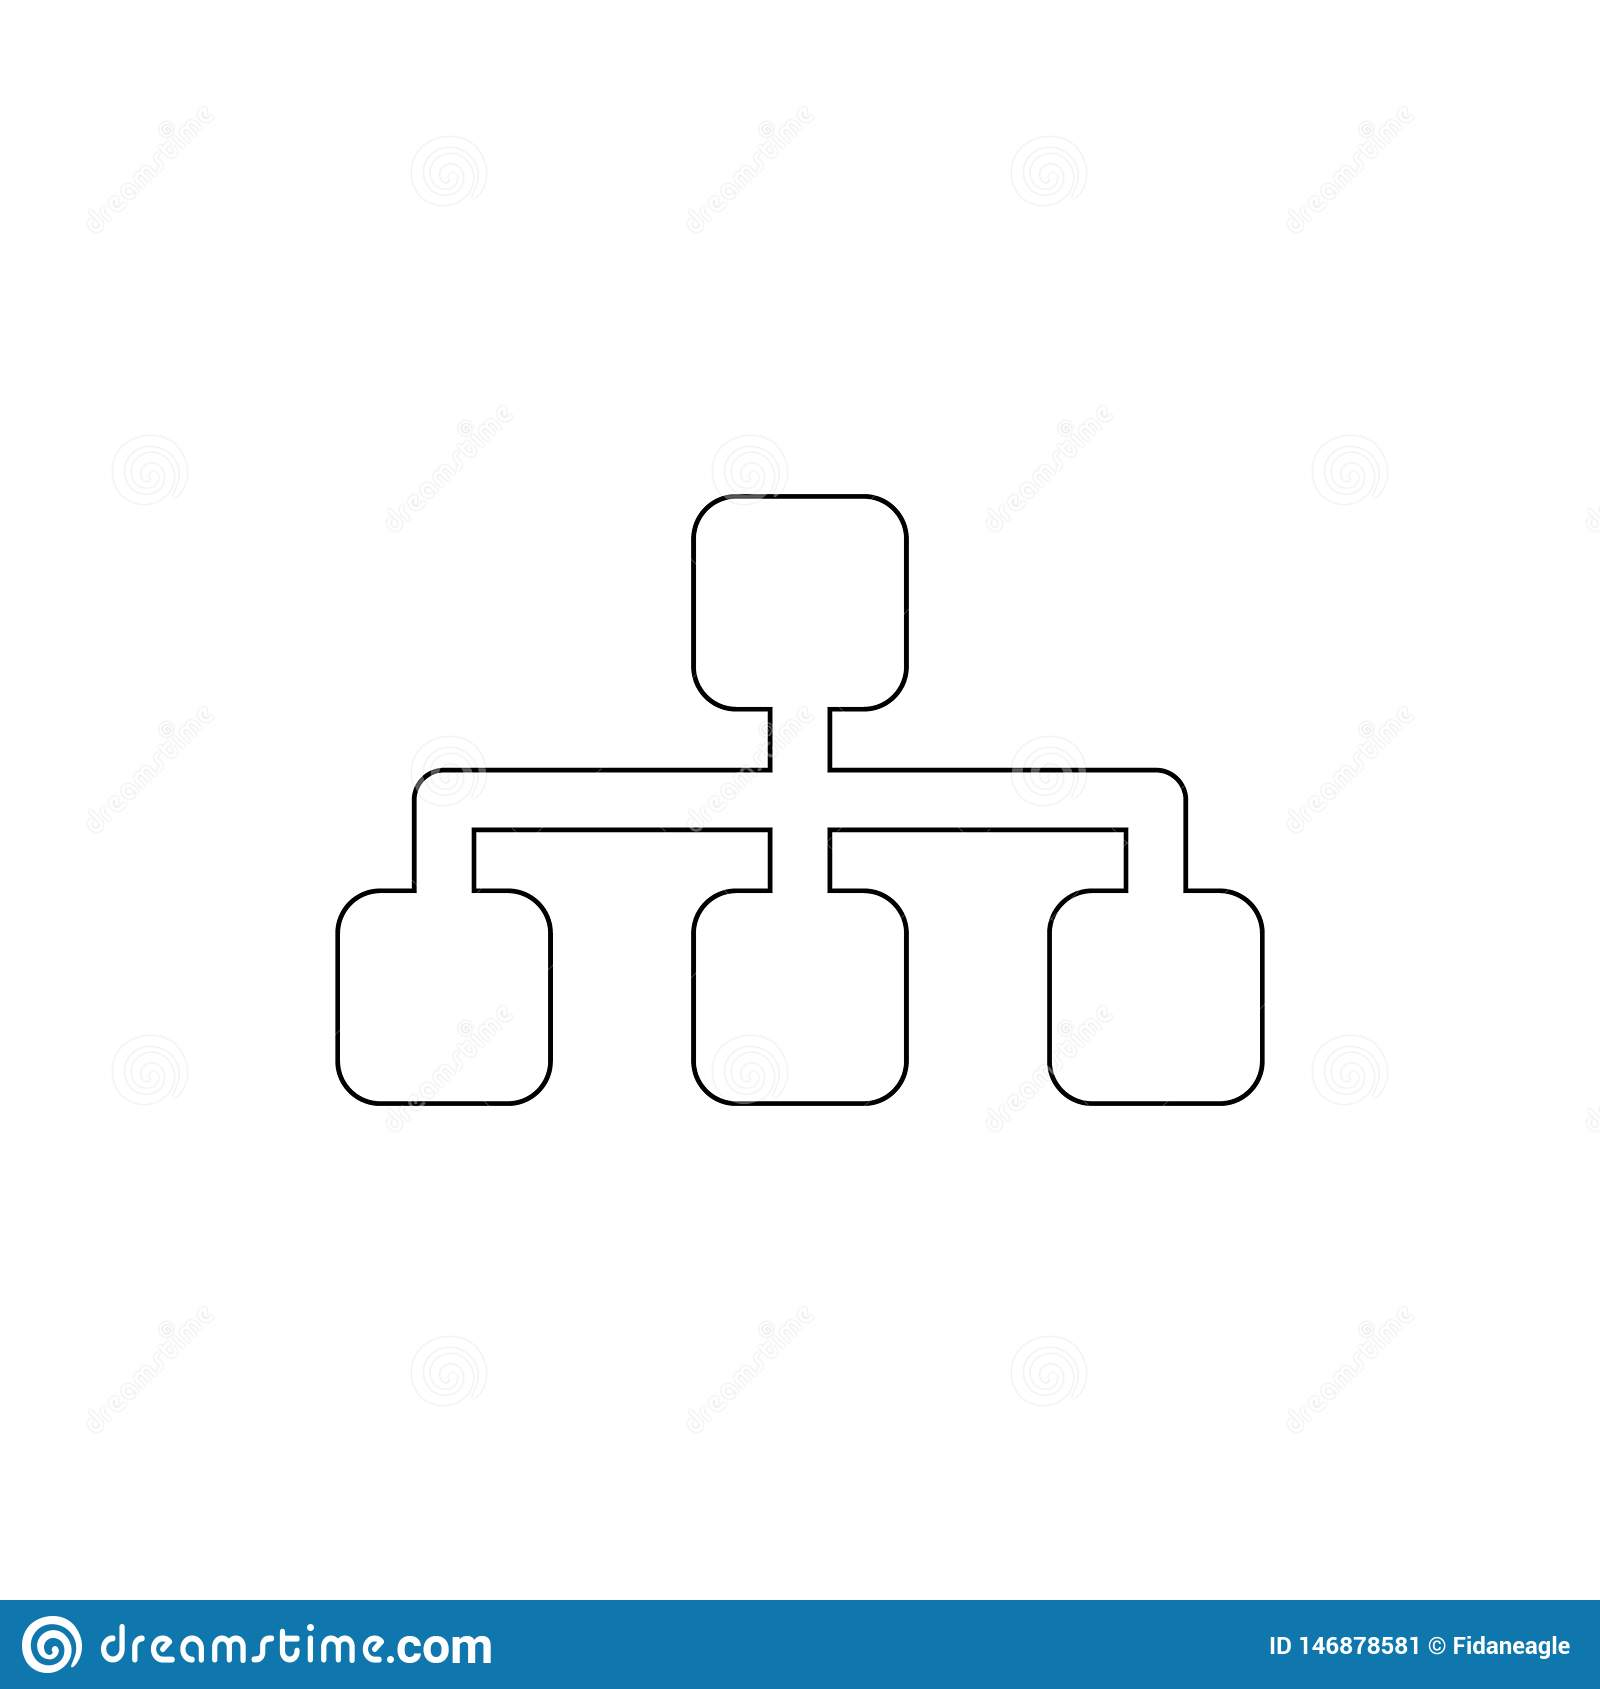 Sitemap outline icon. Signs and symbols can be used for web, logo, mobile app, UI, UX